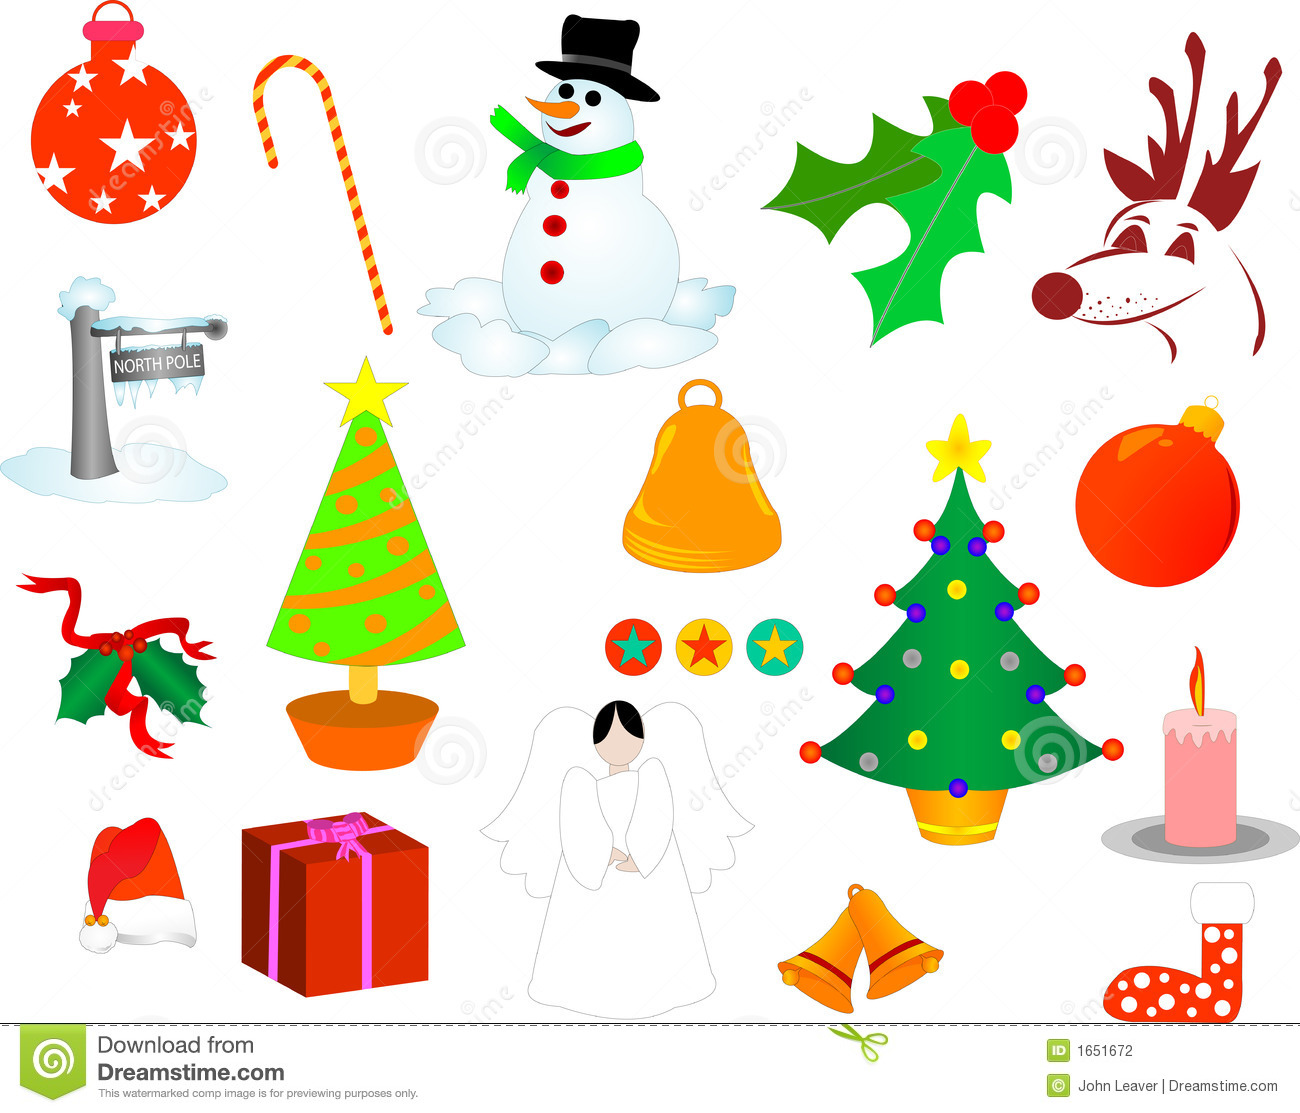 Christmas Illustrations.Christmas Illustrations Stock Illustration Illustration Of